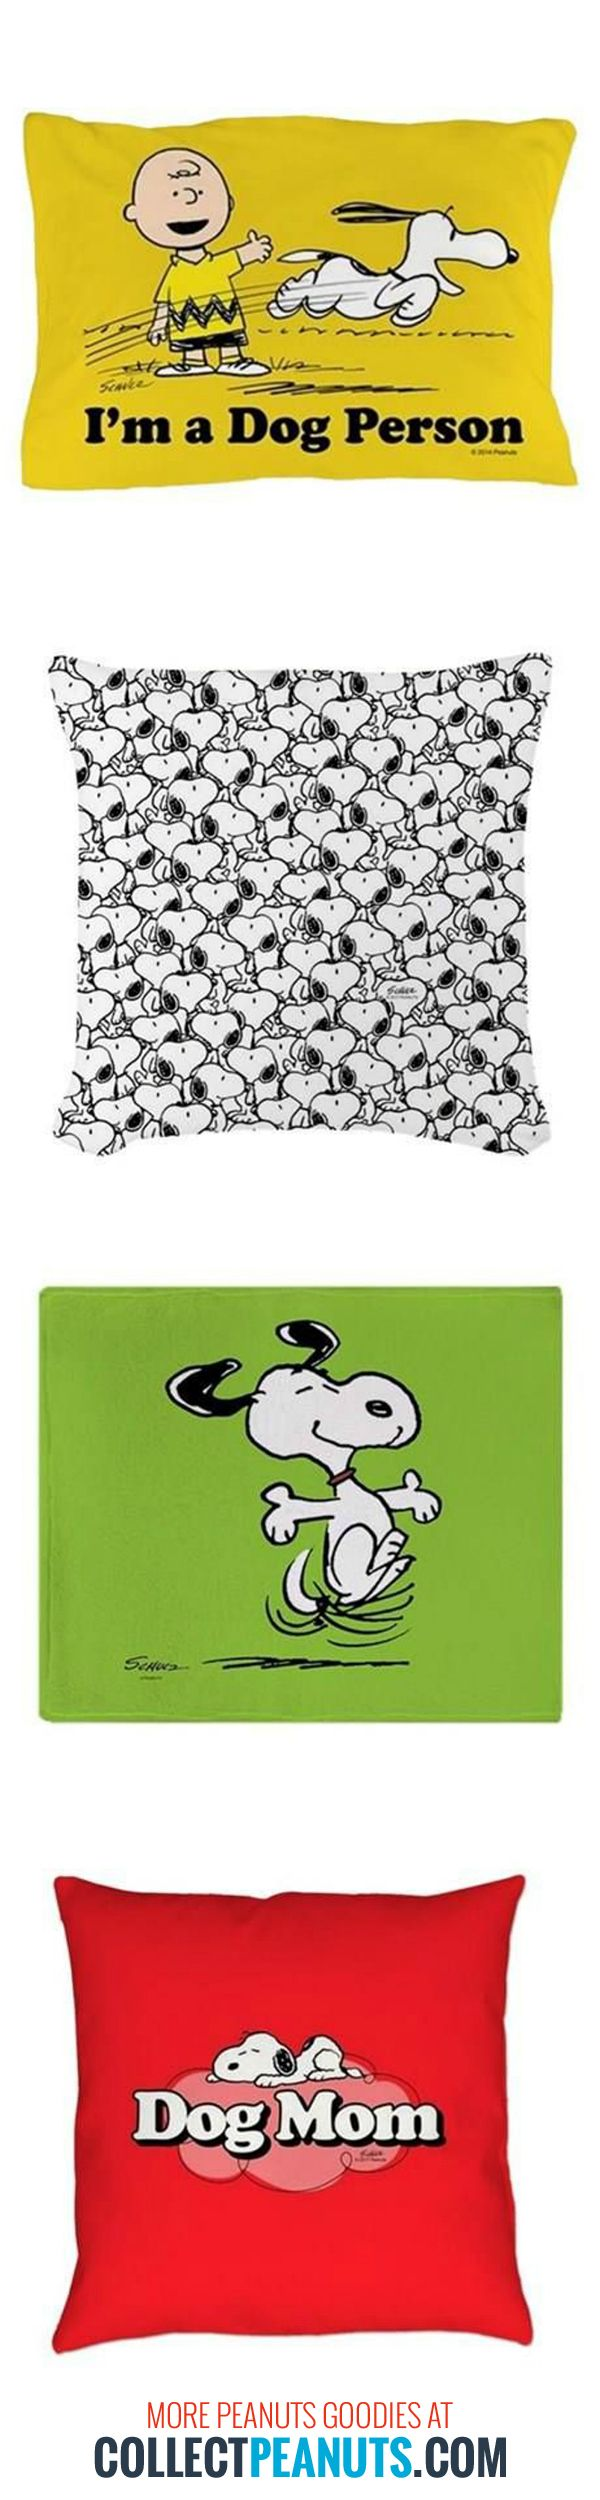 Snoopy Pillow And Throw Set : Best 25+ Snoopy blanket ideas on Pinterest Chocolate humor, Peanuts and Linus peanuts